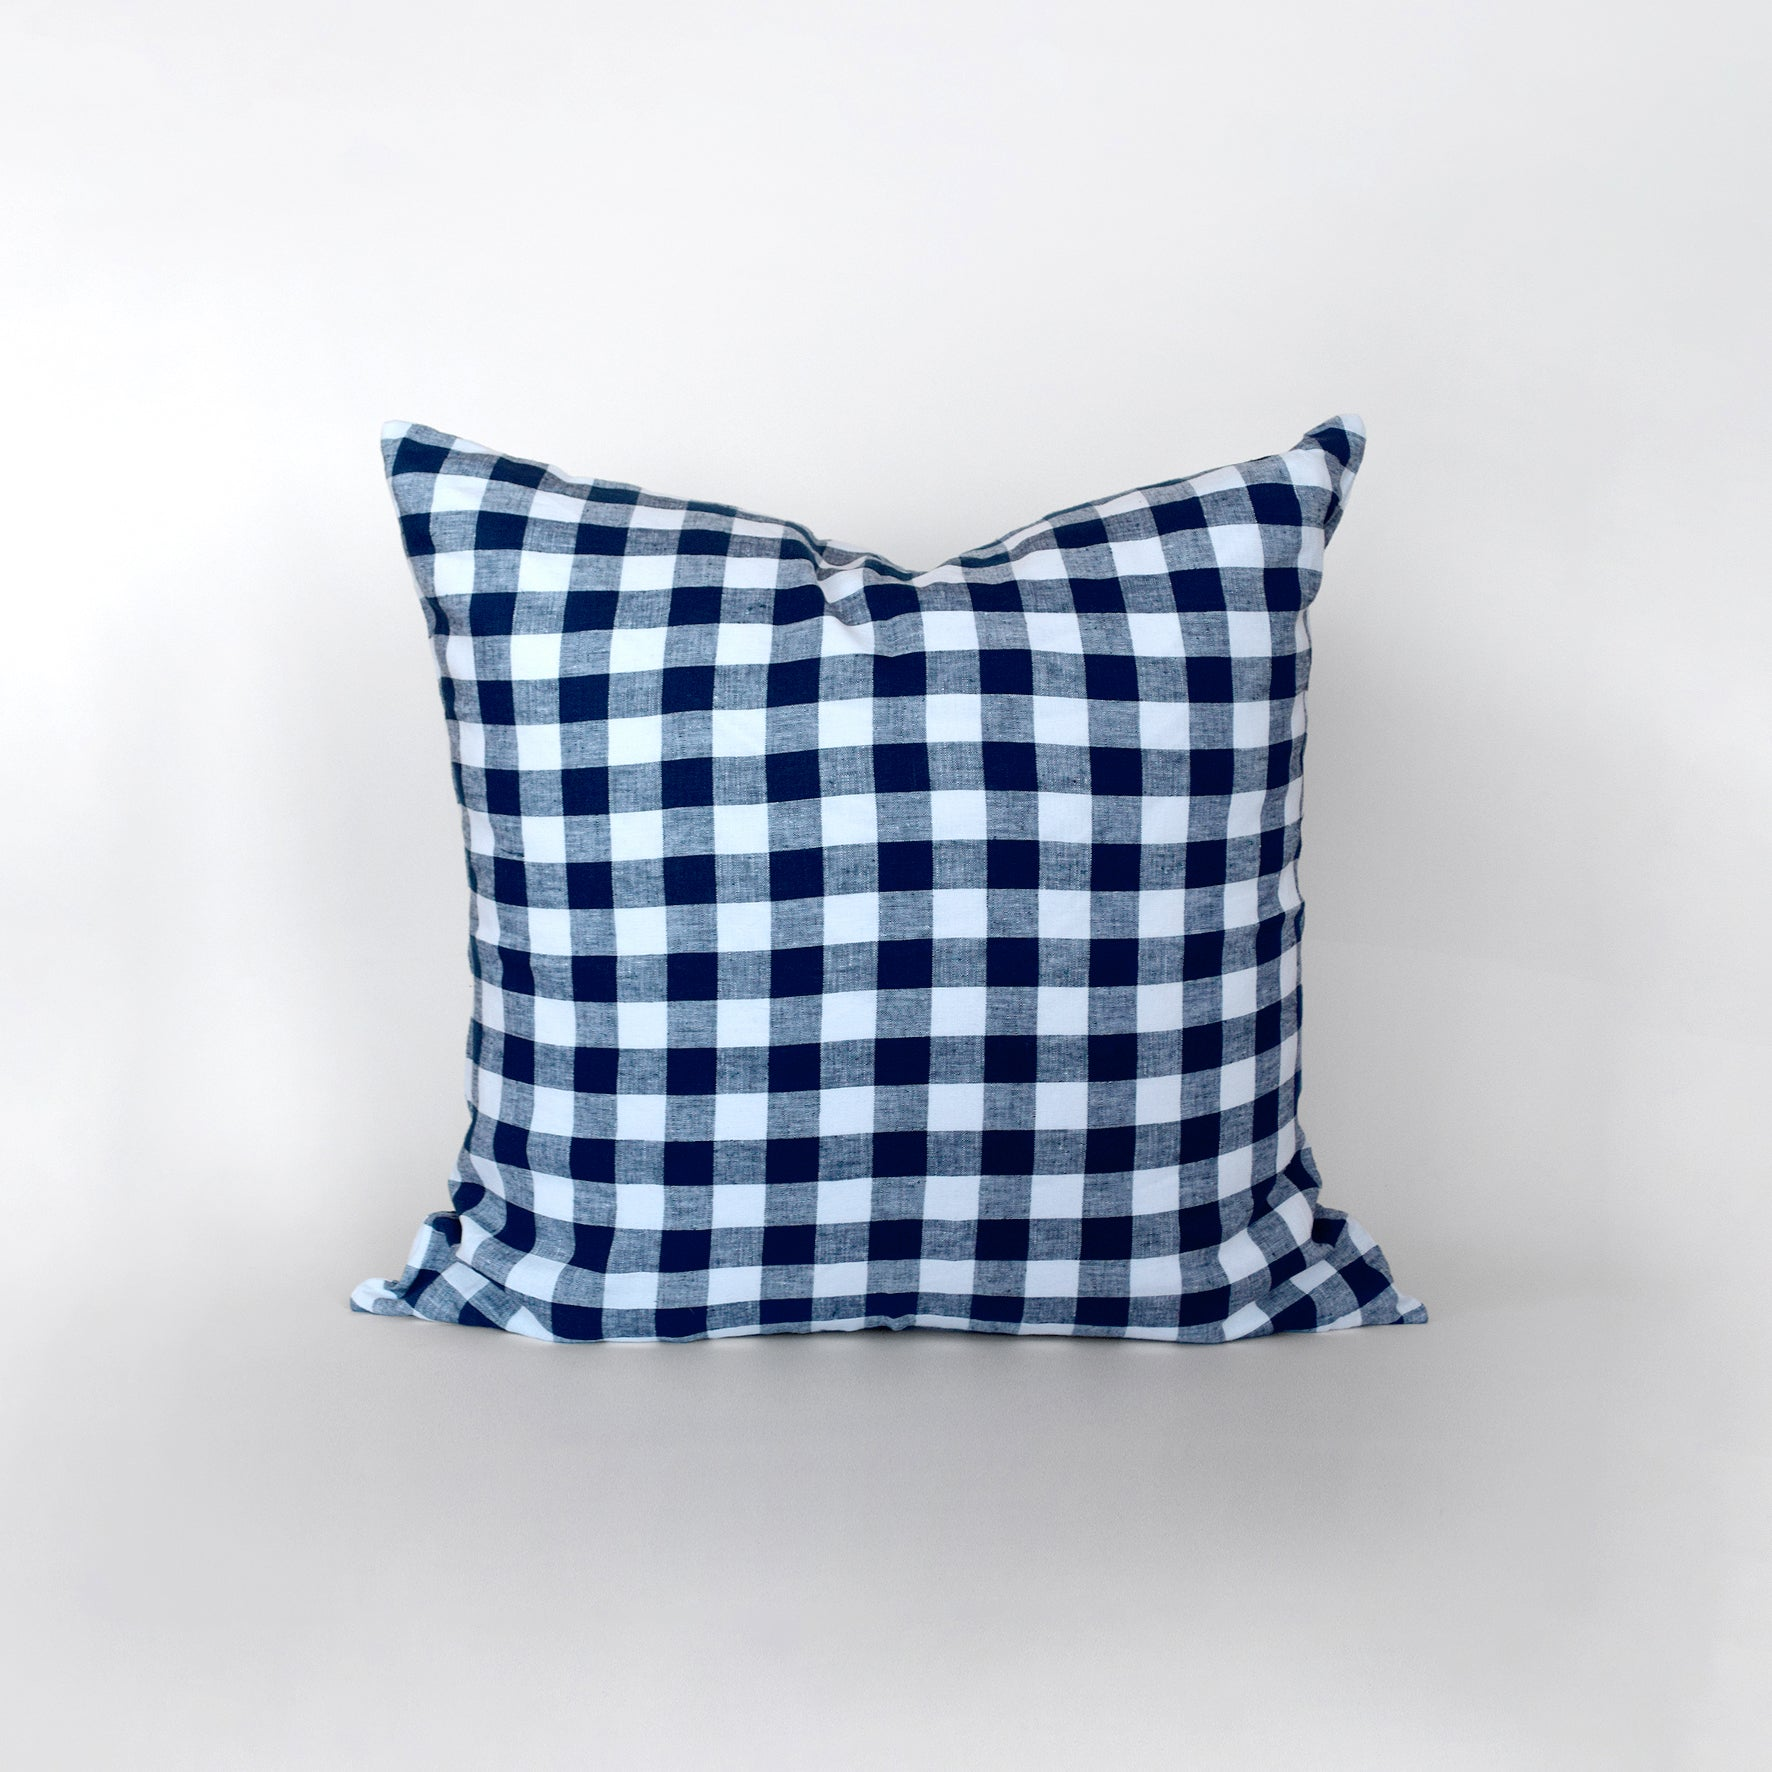 Checkmate European Linen Pillowcase - Indigo